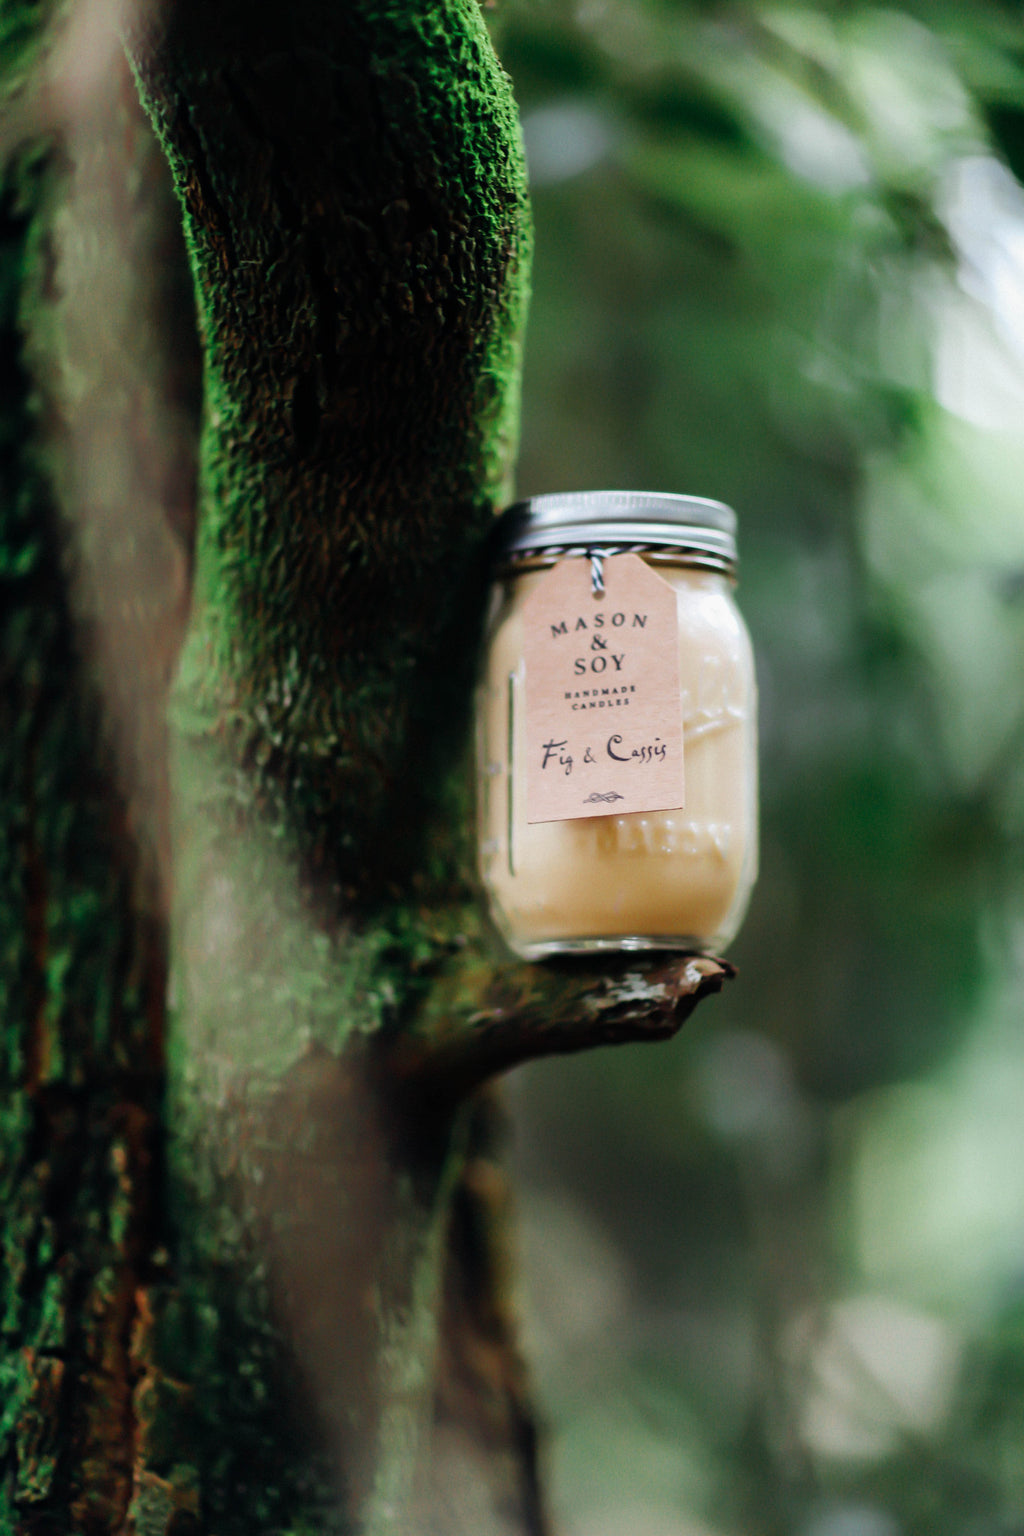 Ball Mason Jar (437mls) Scented Soy Candle